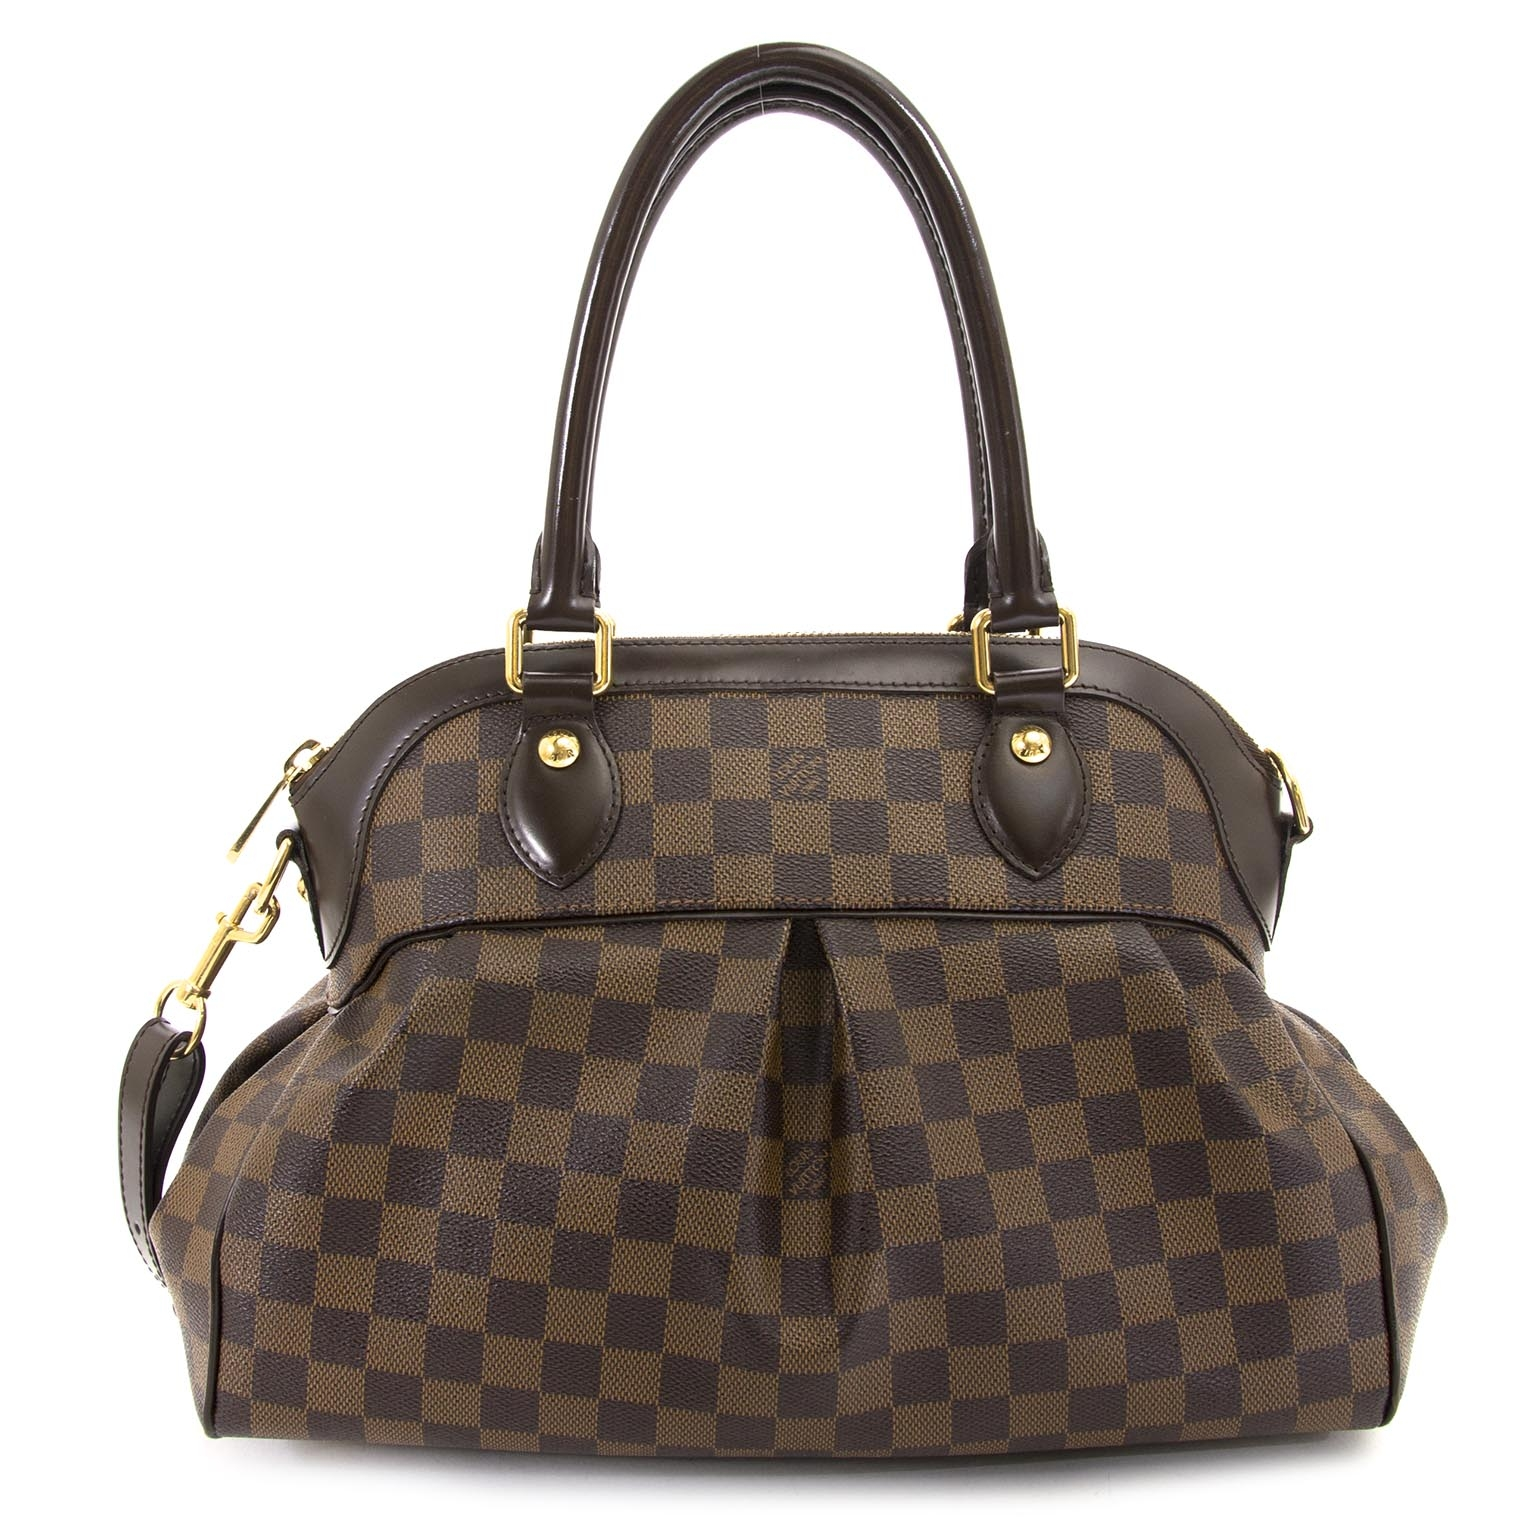 89299521d284 Buy safe and secure Louis Vuitton Damier Trevi PM for sale at the best  price at Labellov secondhand luxury